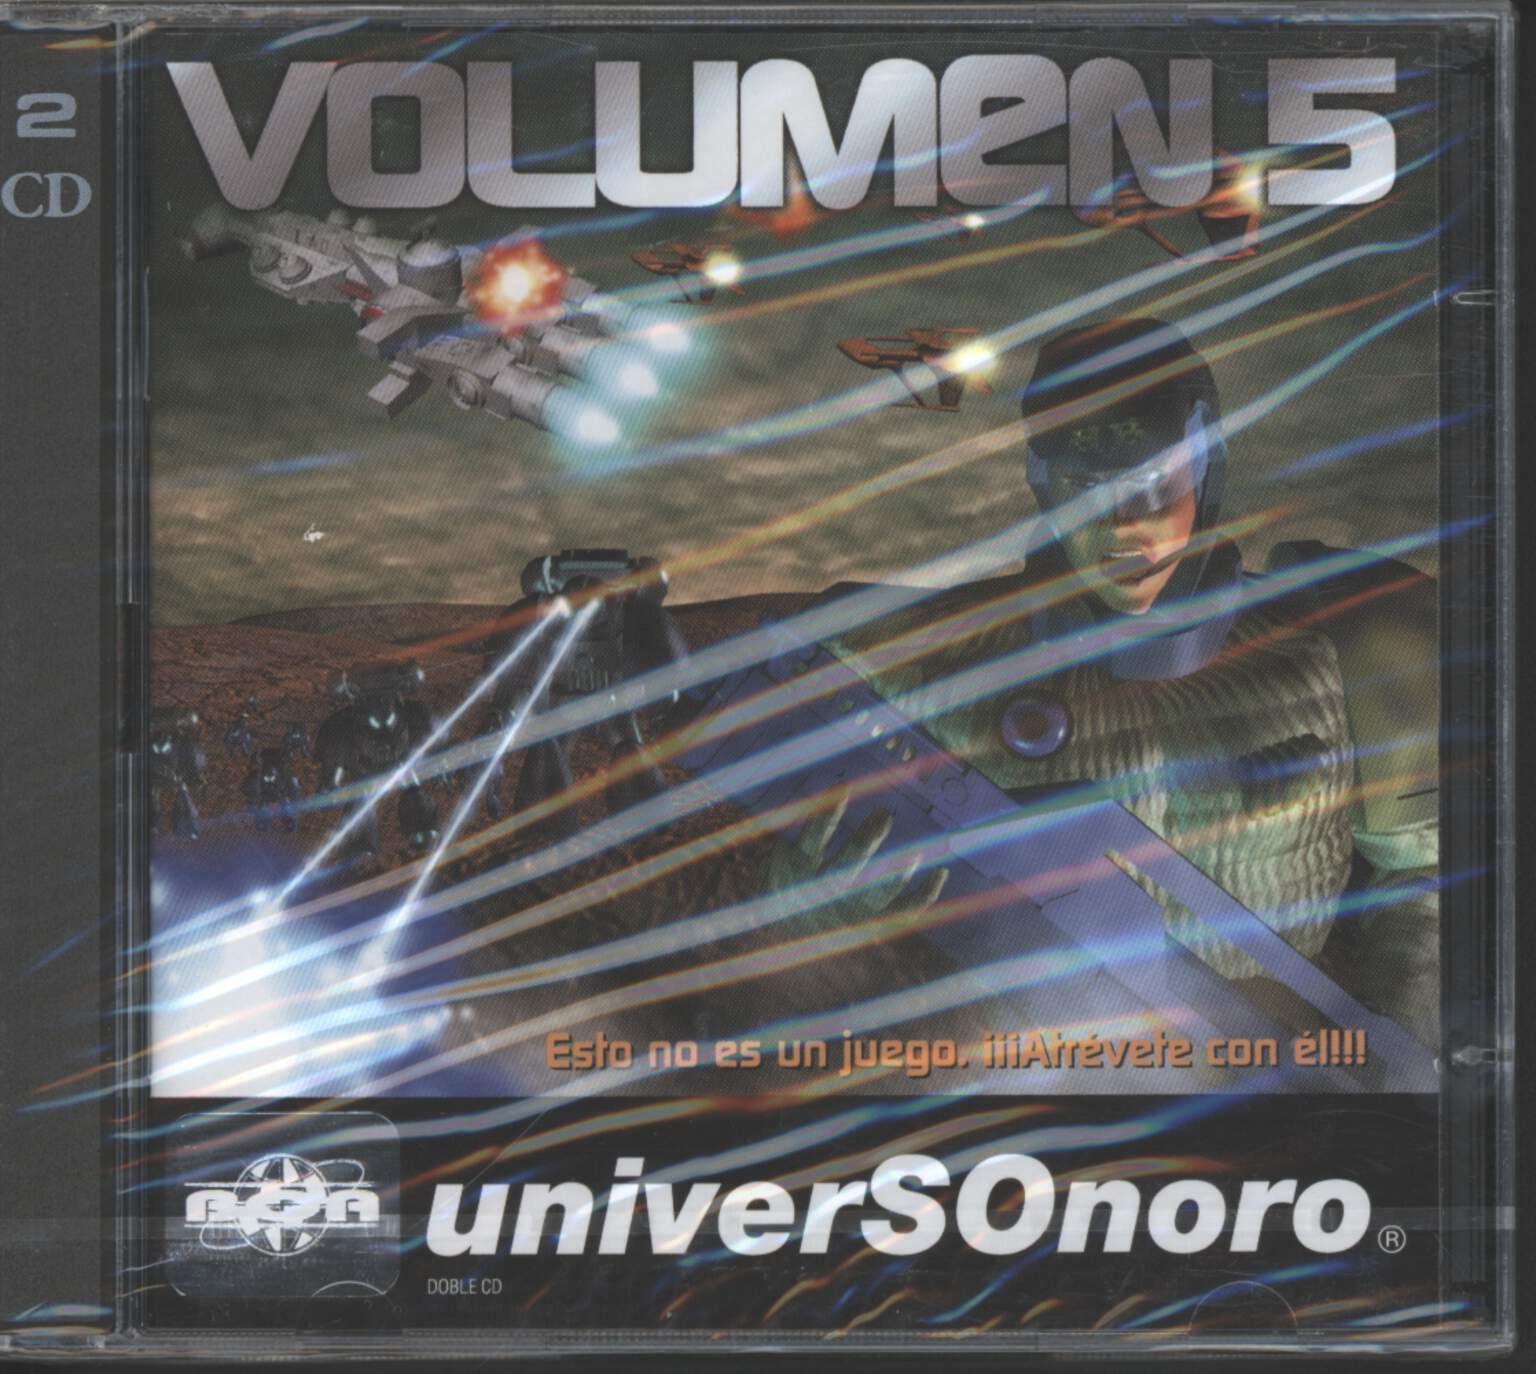 Various: UniverSOnoro Volumen 5, CD